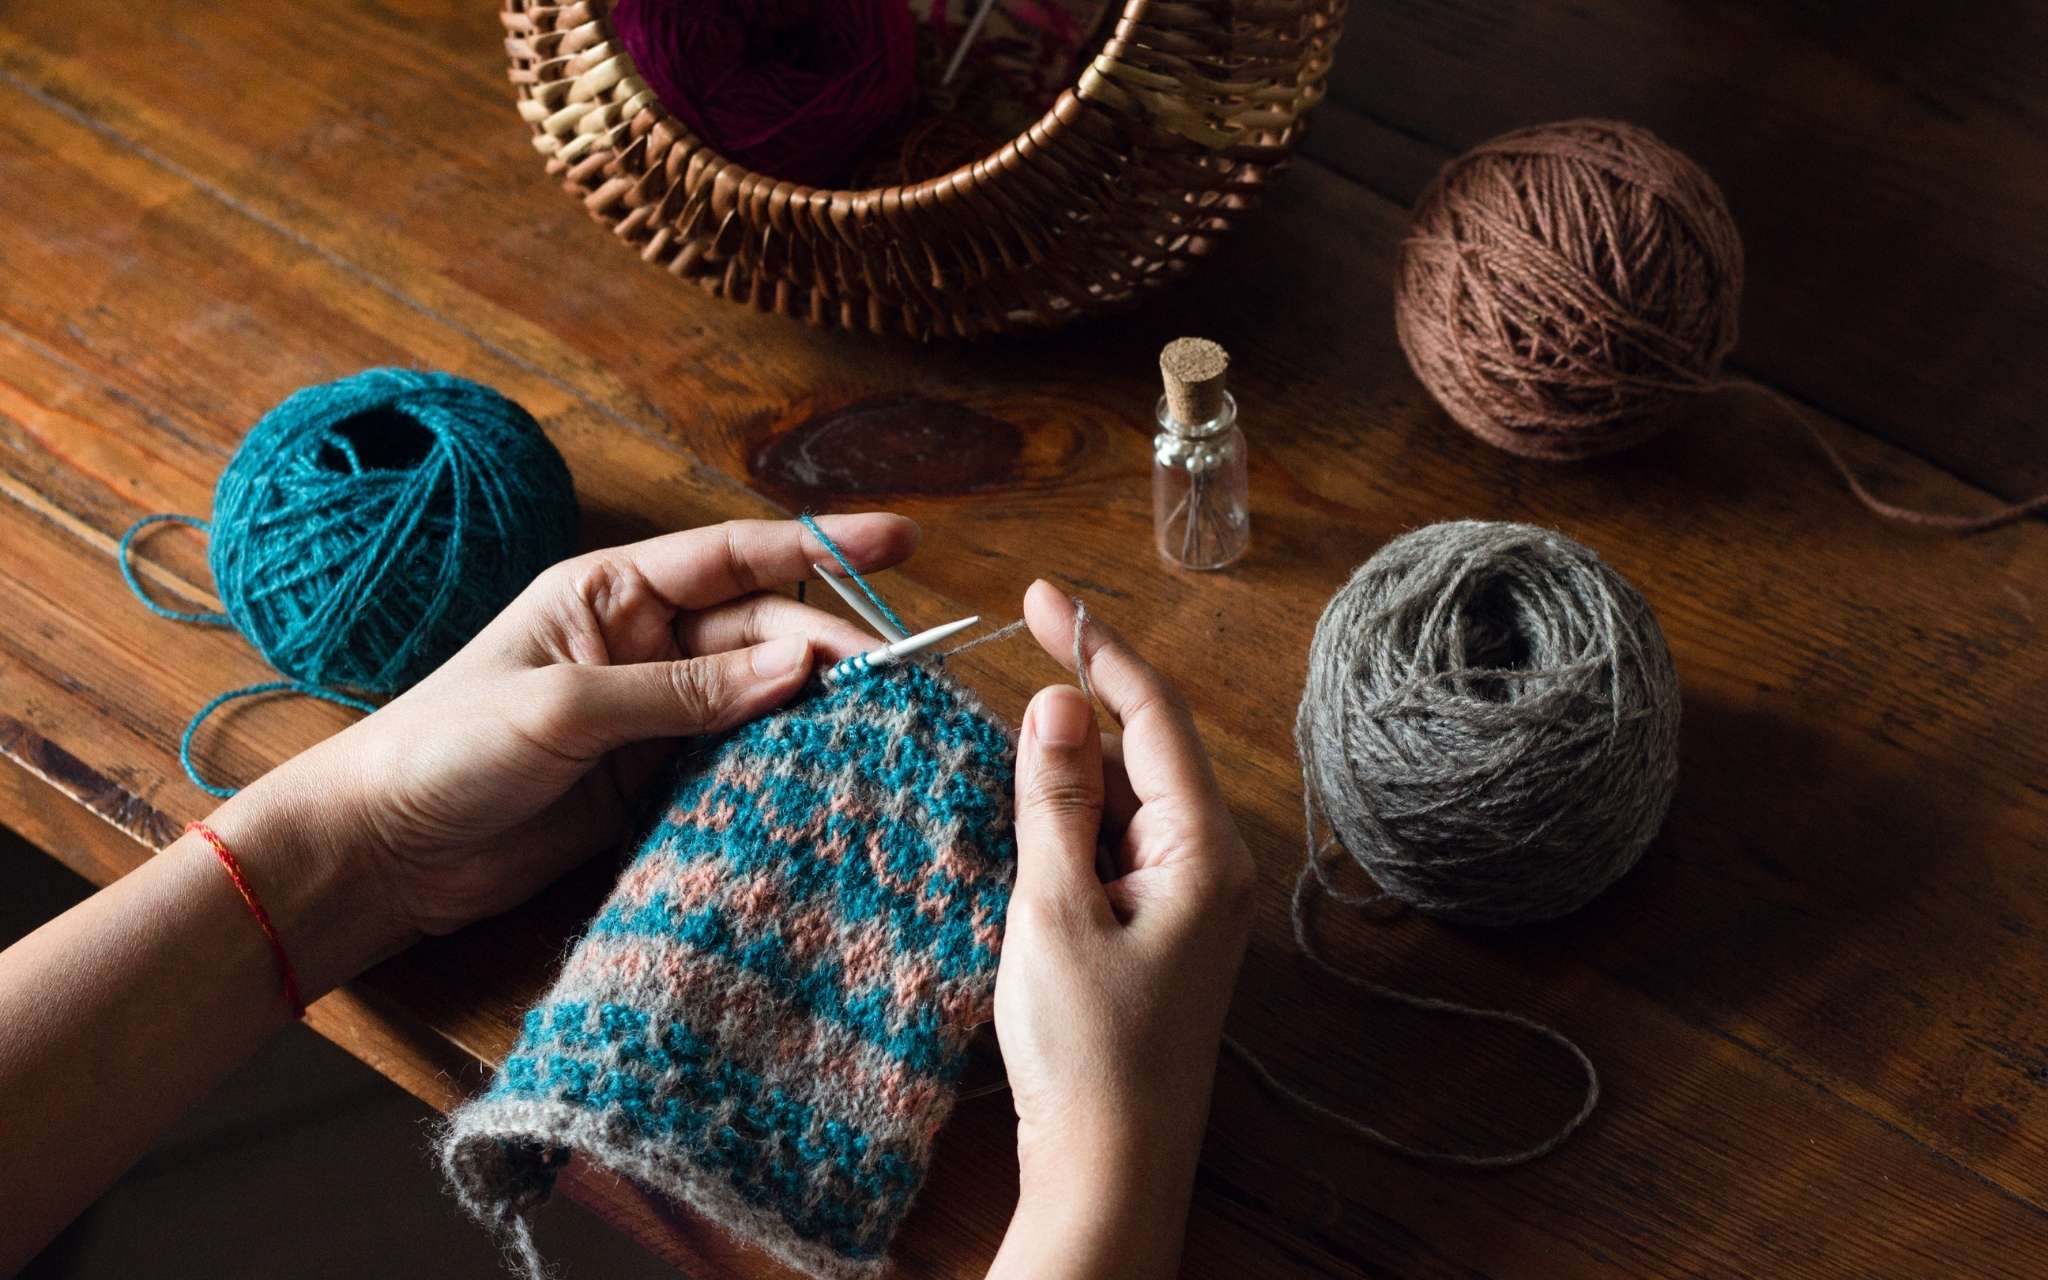 Hands knitting on a colourwork swatch in blue, coral and grey. The knitting is being held over a wooden table and there is a round wicker basket at the top of the photo and a bottle of pins.